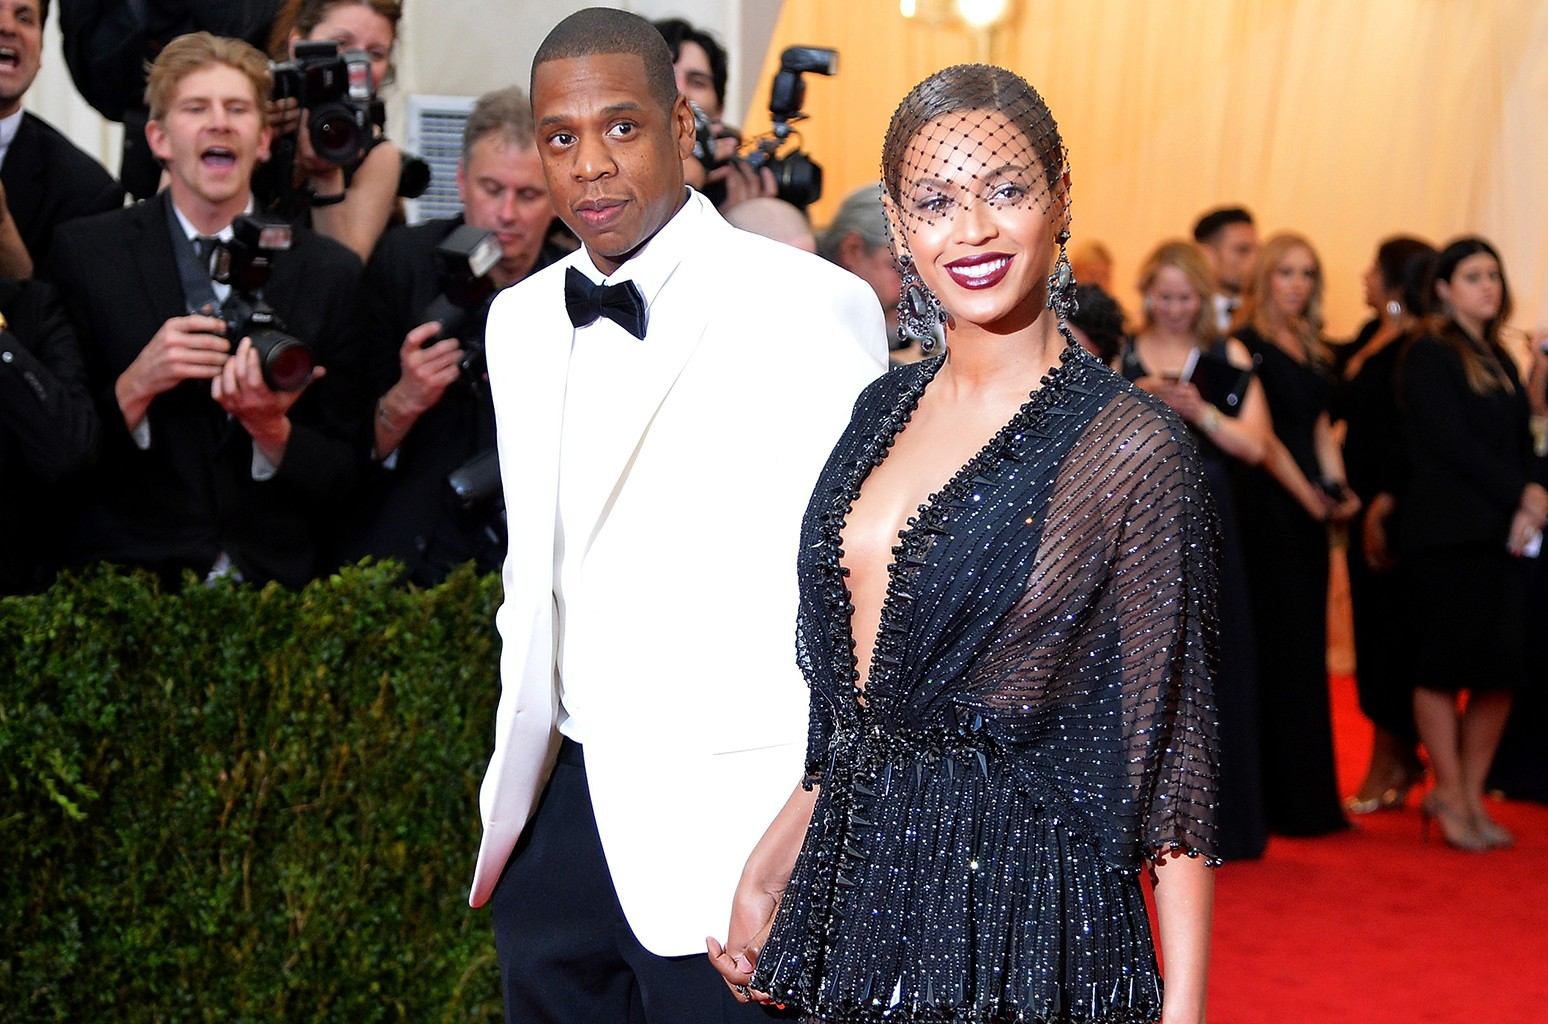 """Jay Z and Beyonce attend the """"Charles James: Beyond Fashion"""" Costume Institute Gala at the Metropolitan Museum of Art on May 5, 2014 in New York City."""